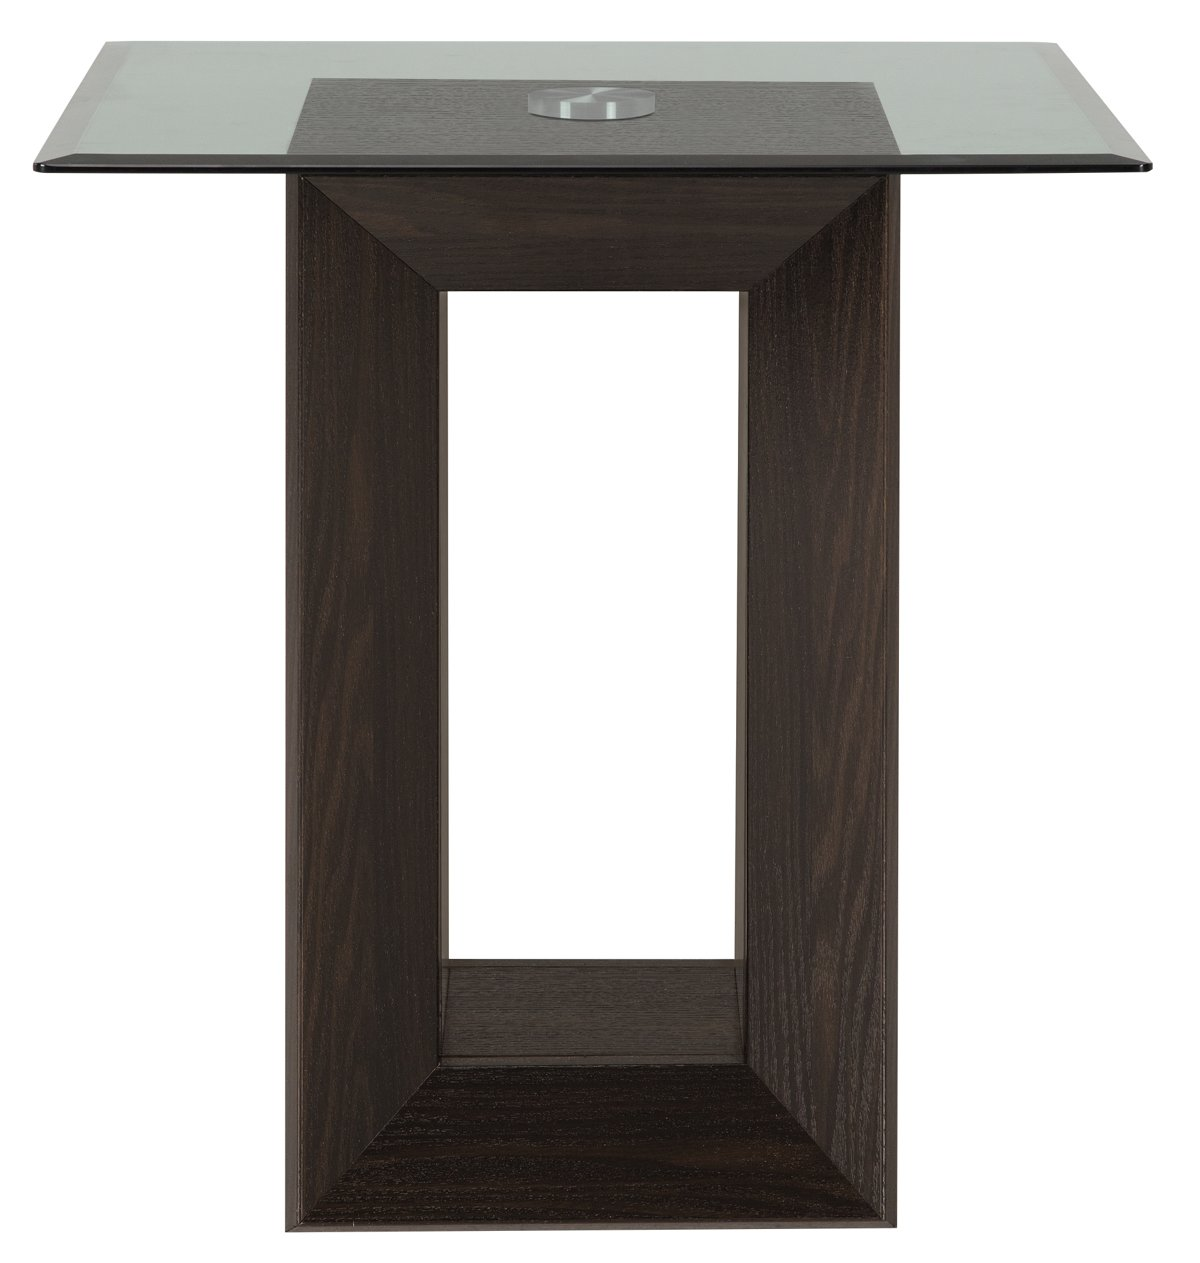 City Furniture Adele2 Dark Tone Glass End Table